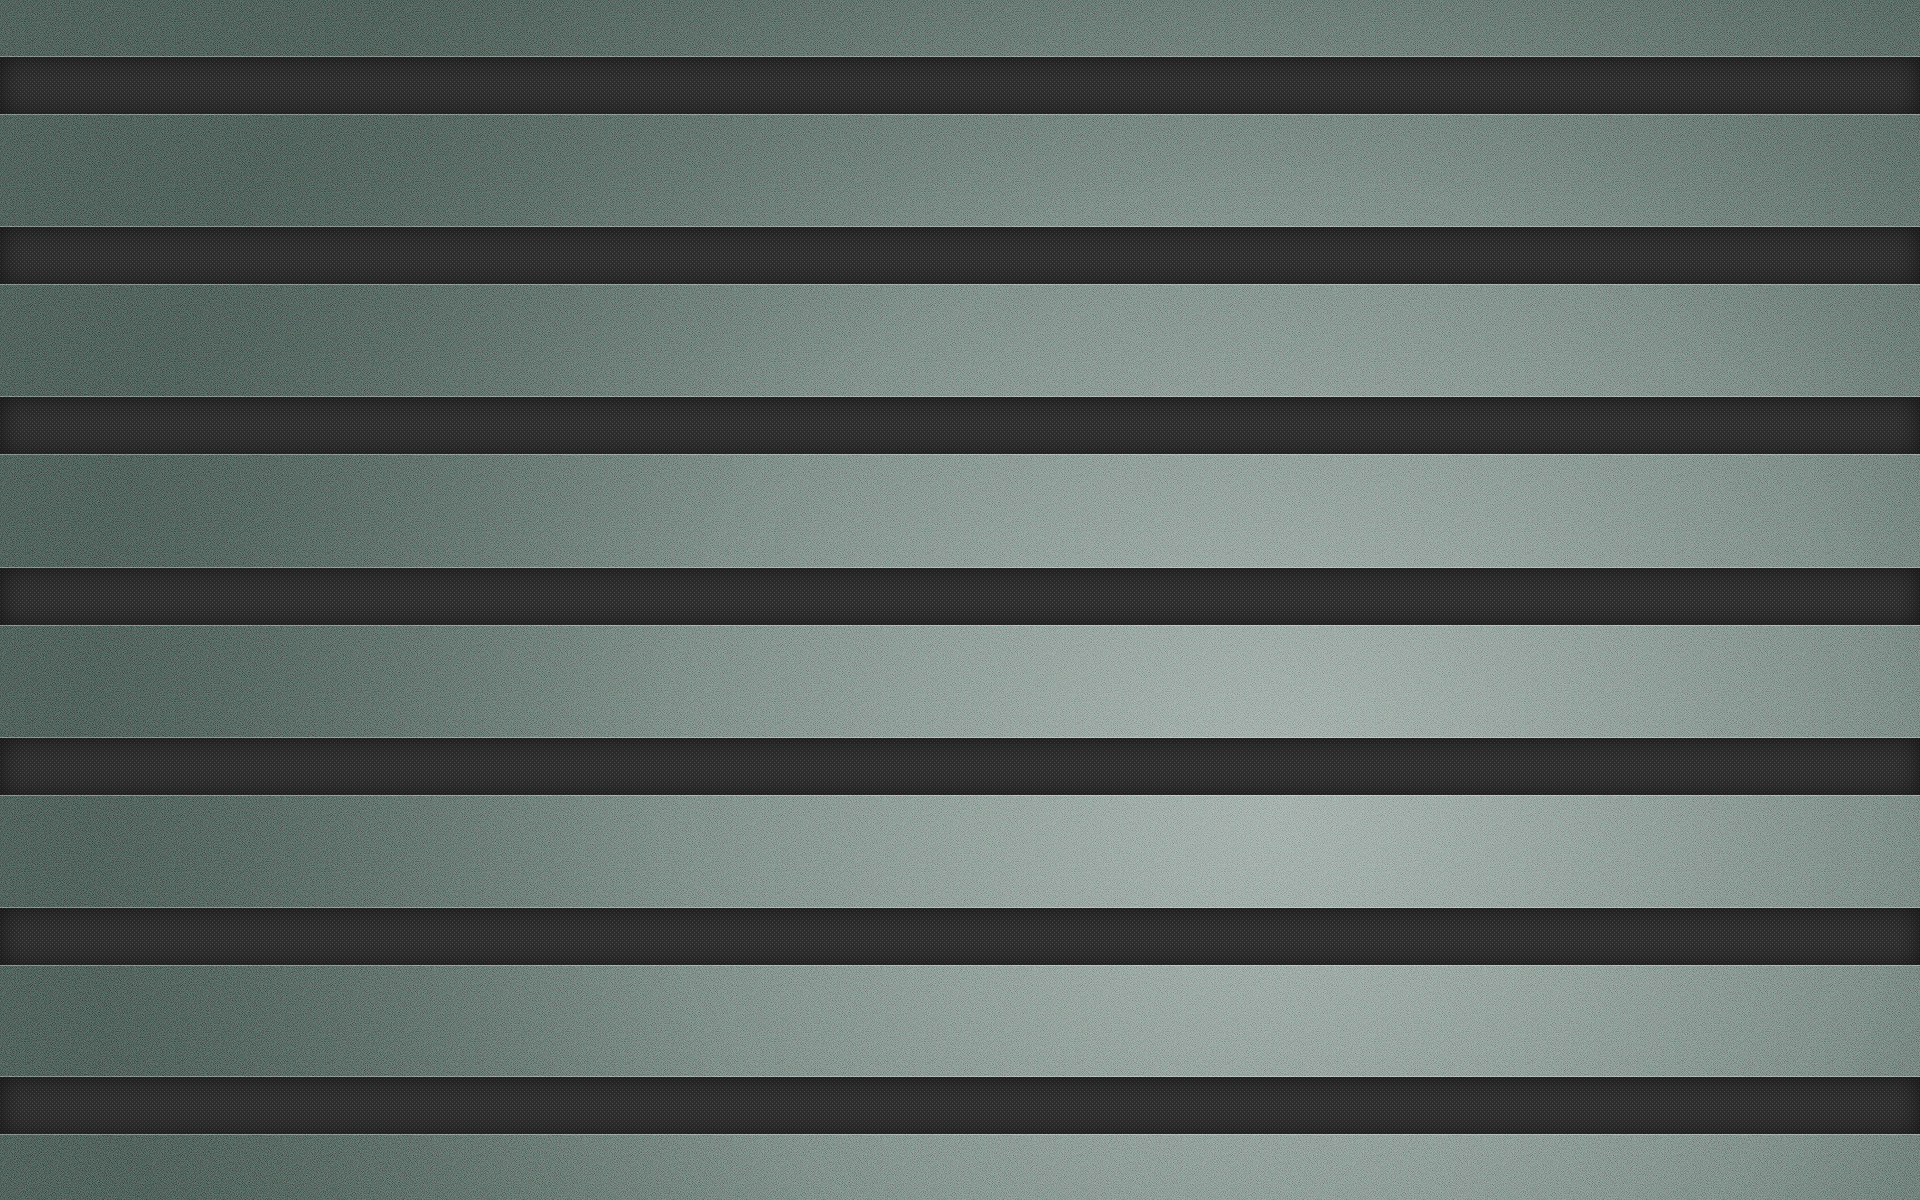 Clipart stripes horizontal or vertical.